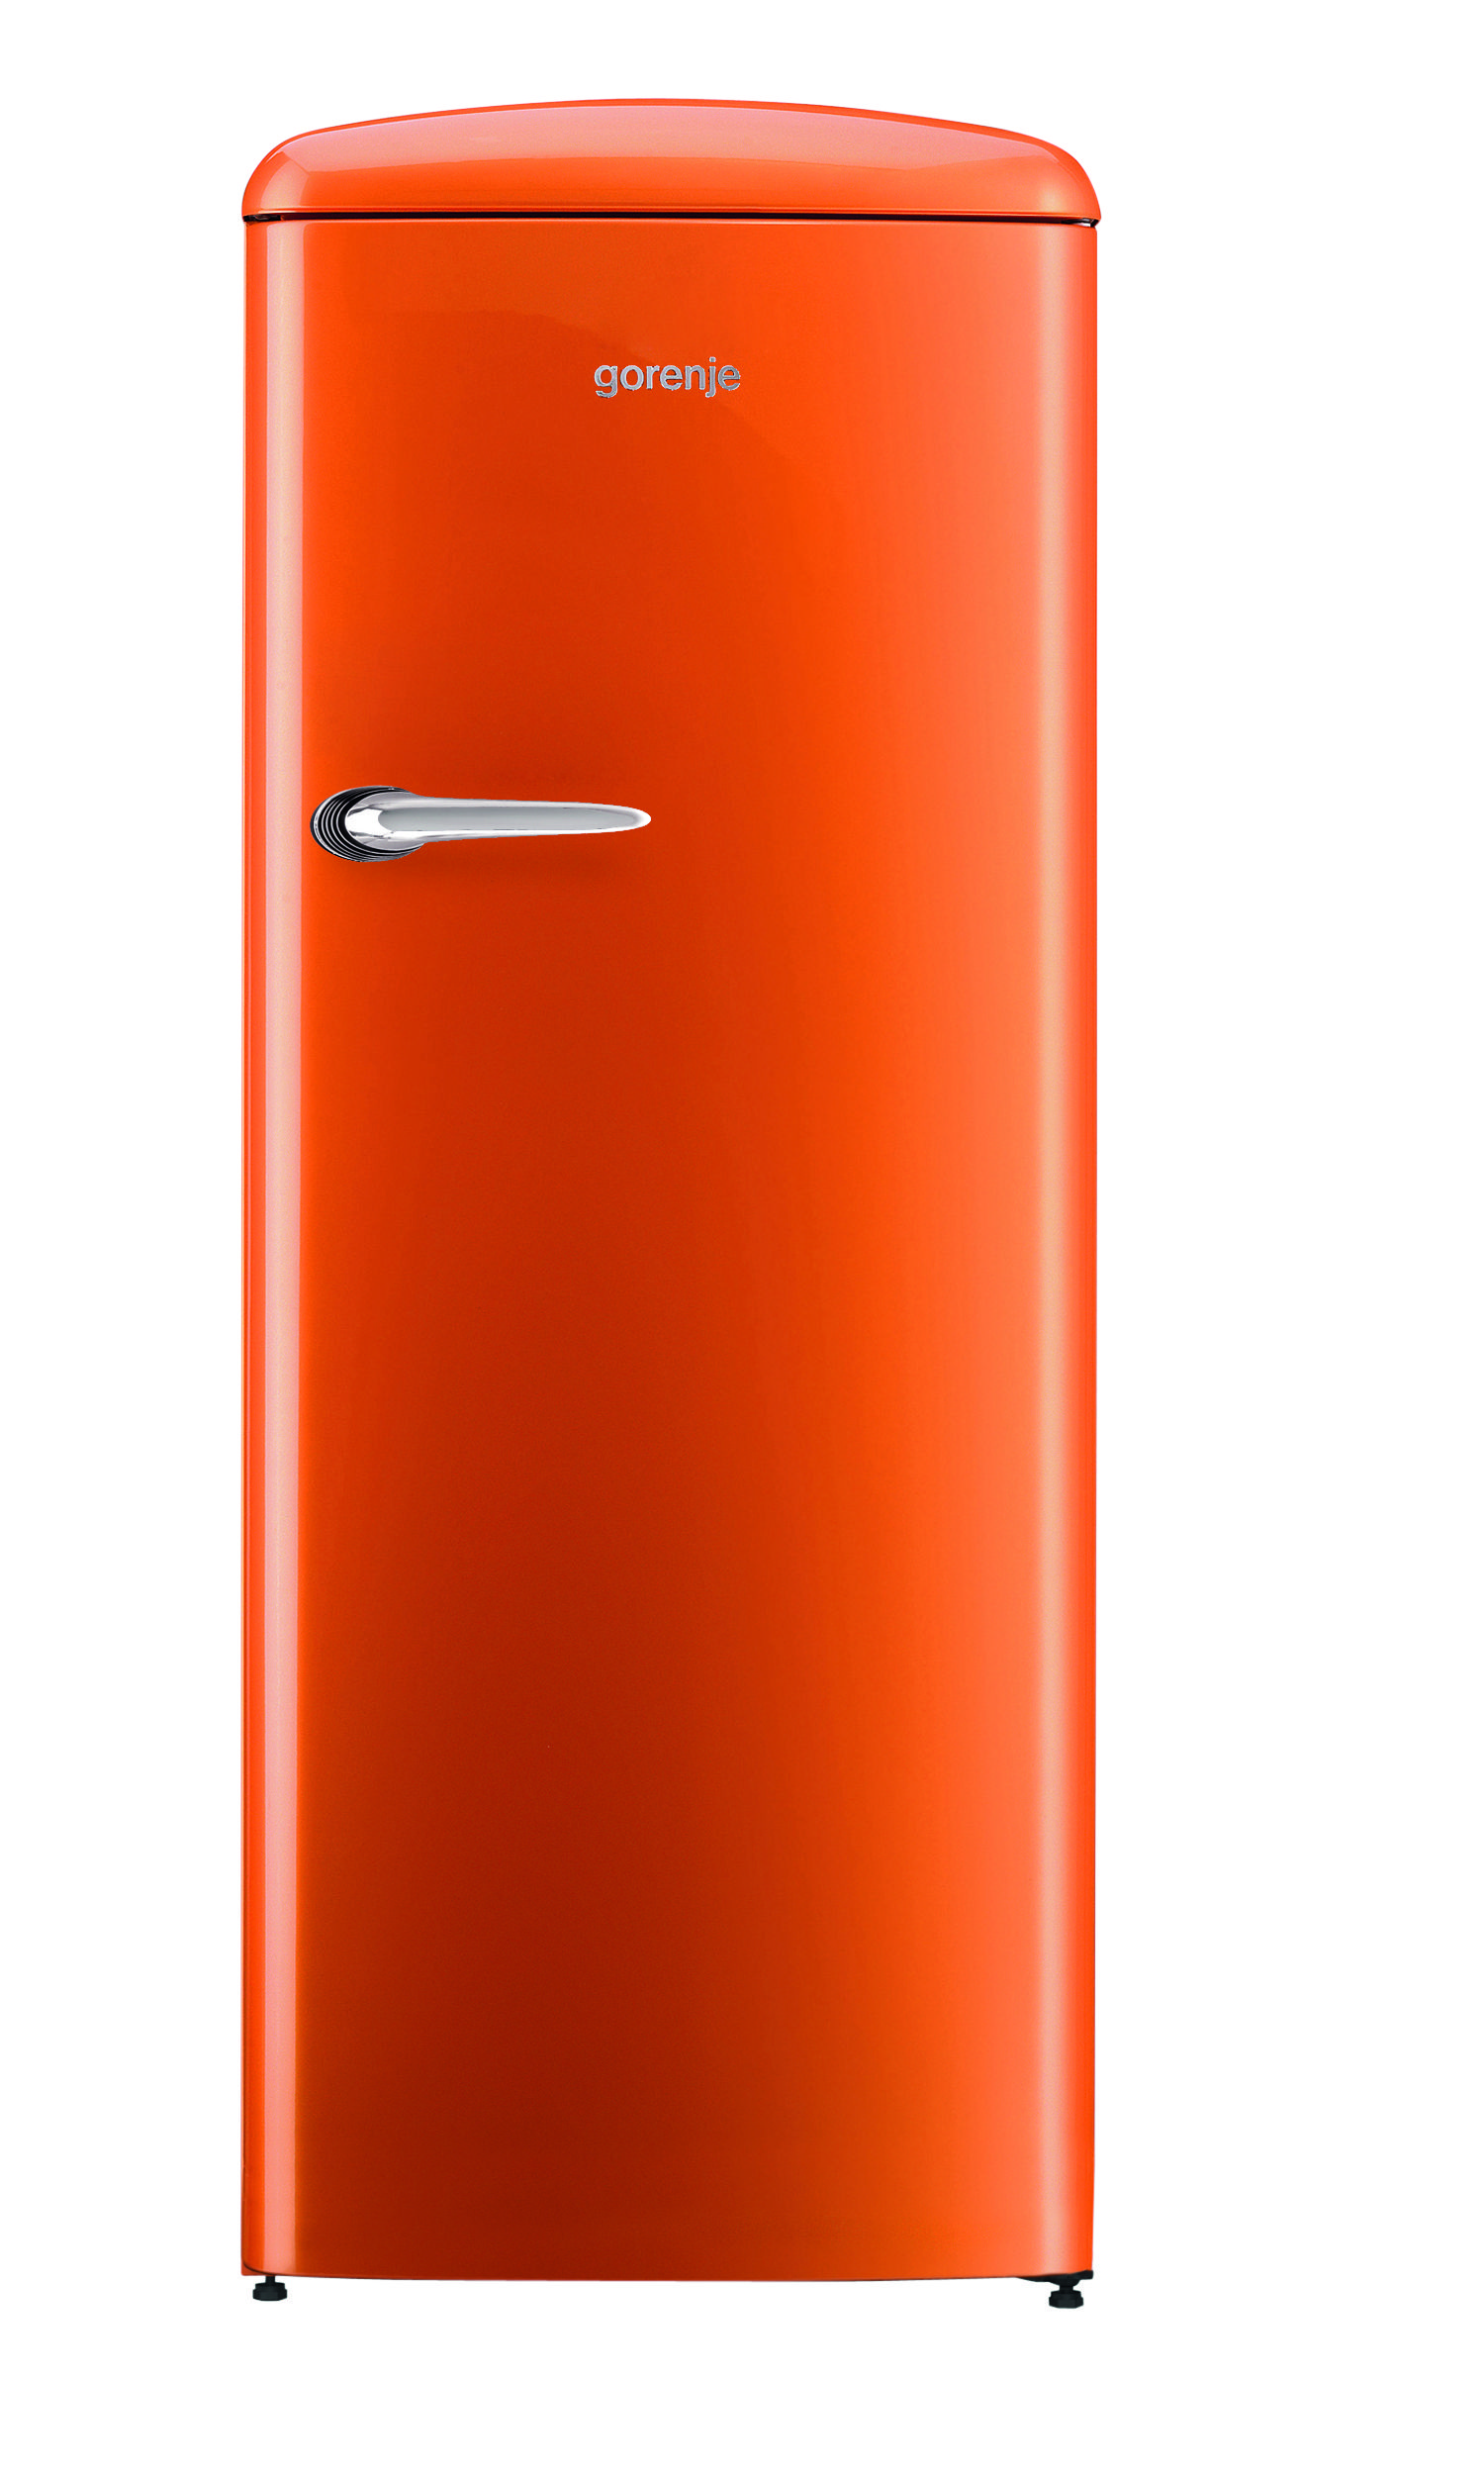 Retro Kühlschrank Orange Gorenje Retro Orb153o Refrigerator Juicy Orange Cut Out